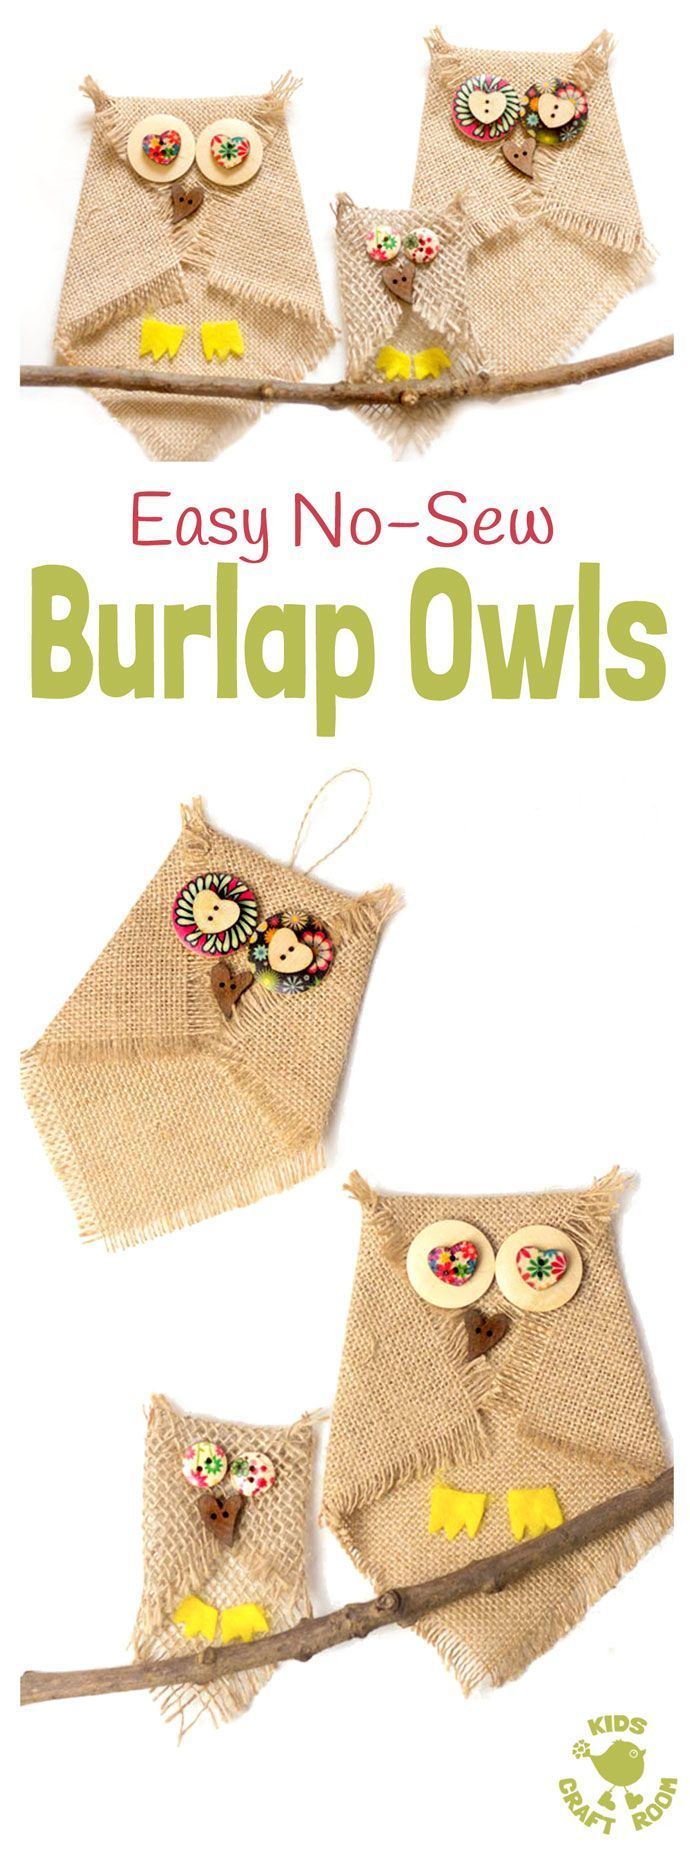 BUTTON AND BURLAP OWL CRAFT - Adorable no-sew burlap craft. An easy owl craft for kids and grown ups that can be used to make lots of lovely unique homemade owl gifts or owl ornaments. Who can resist a cute button craft?